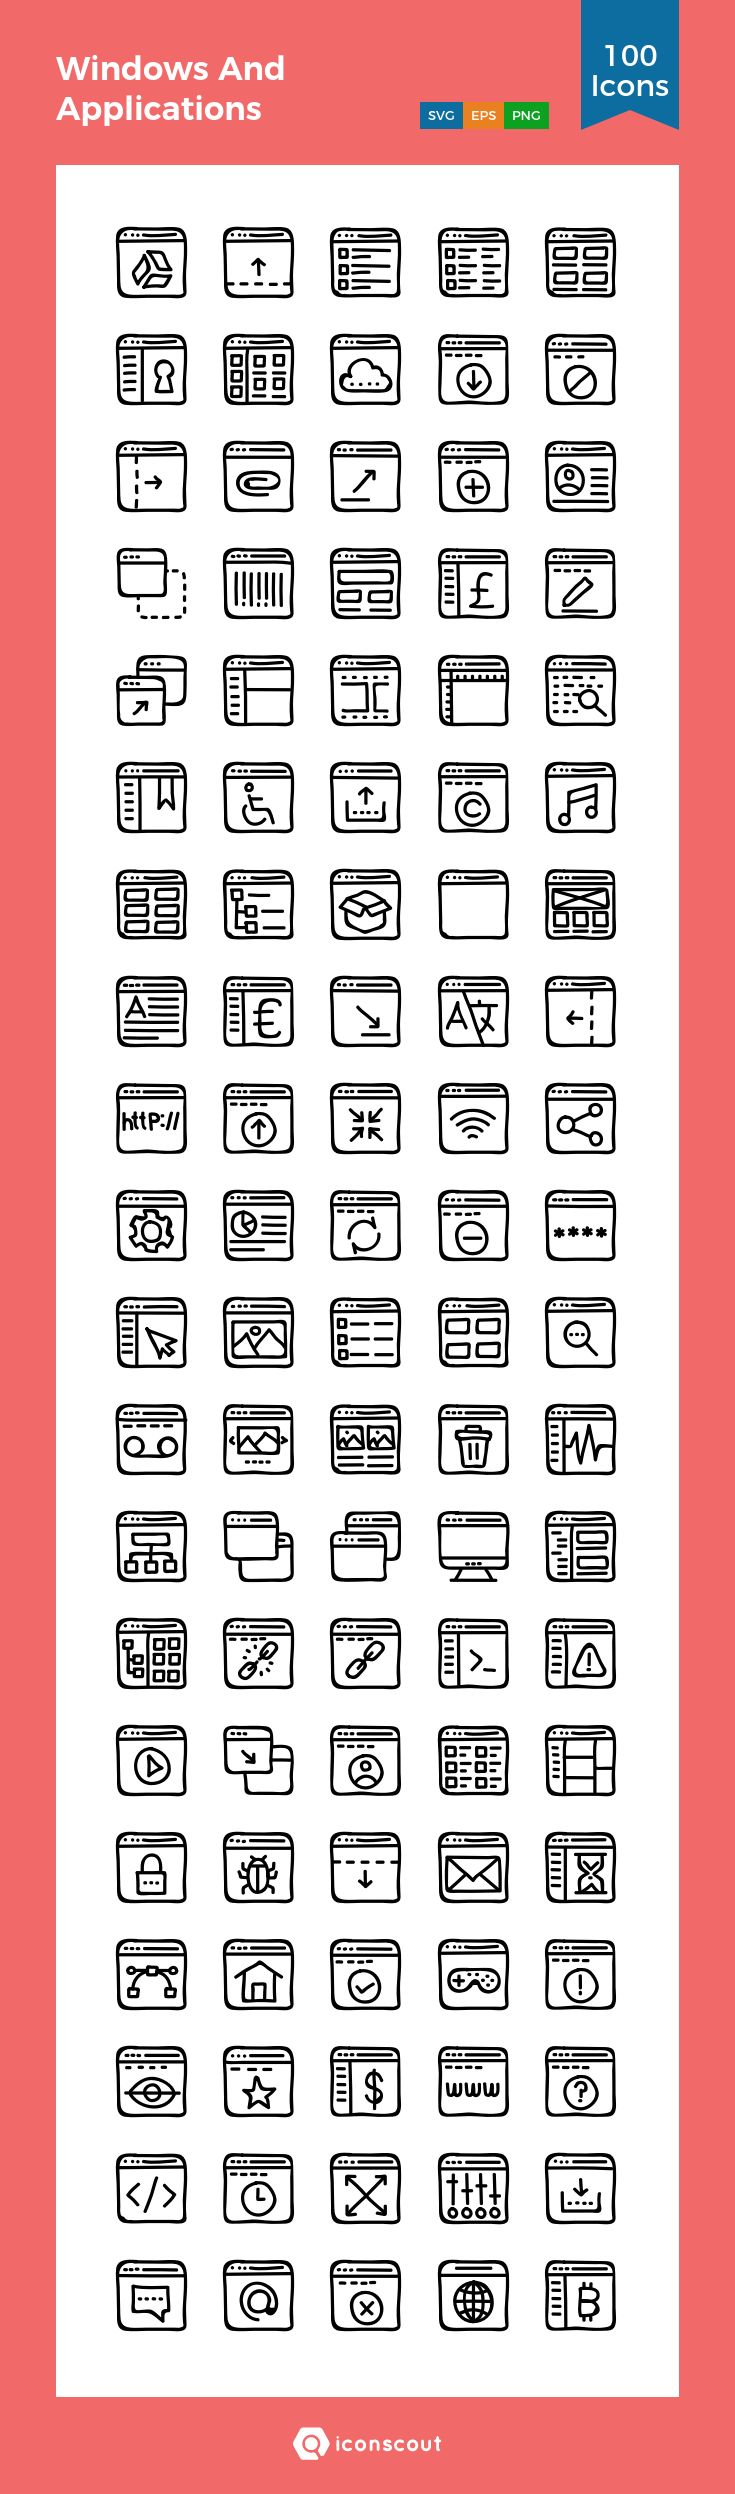 Windows And Applications  Icon Pack - 100 Handdrawn Icons